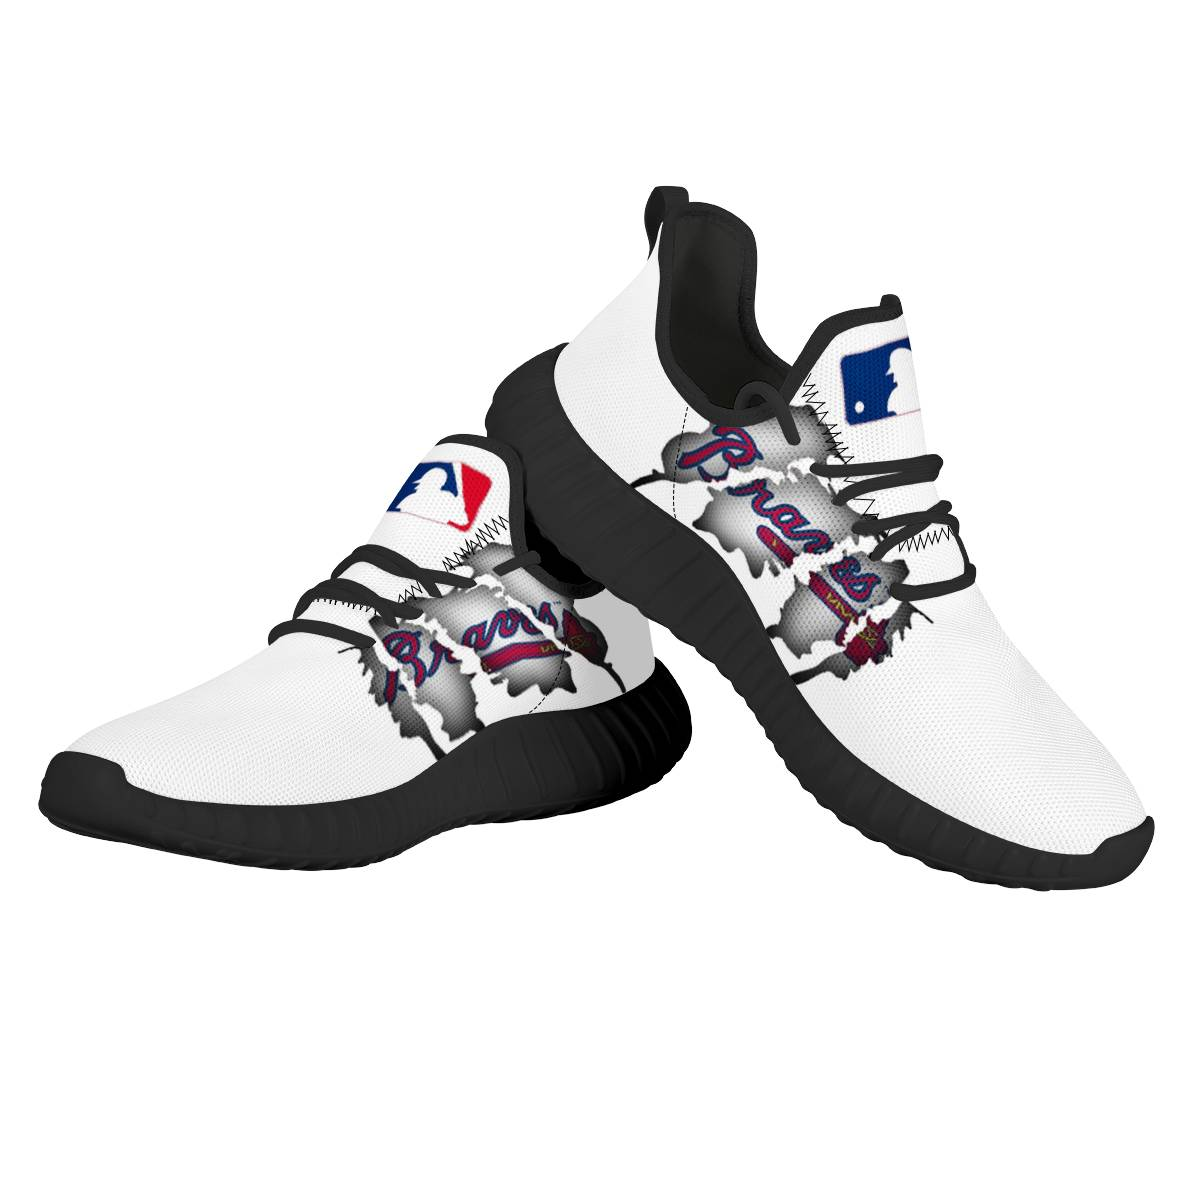 Atlanta Braves Shoes